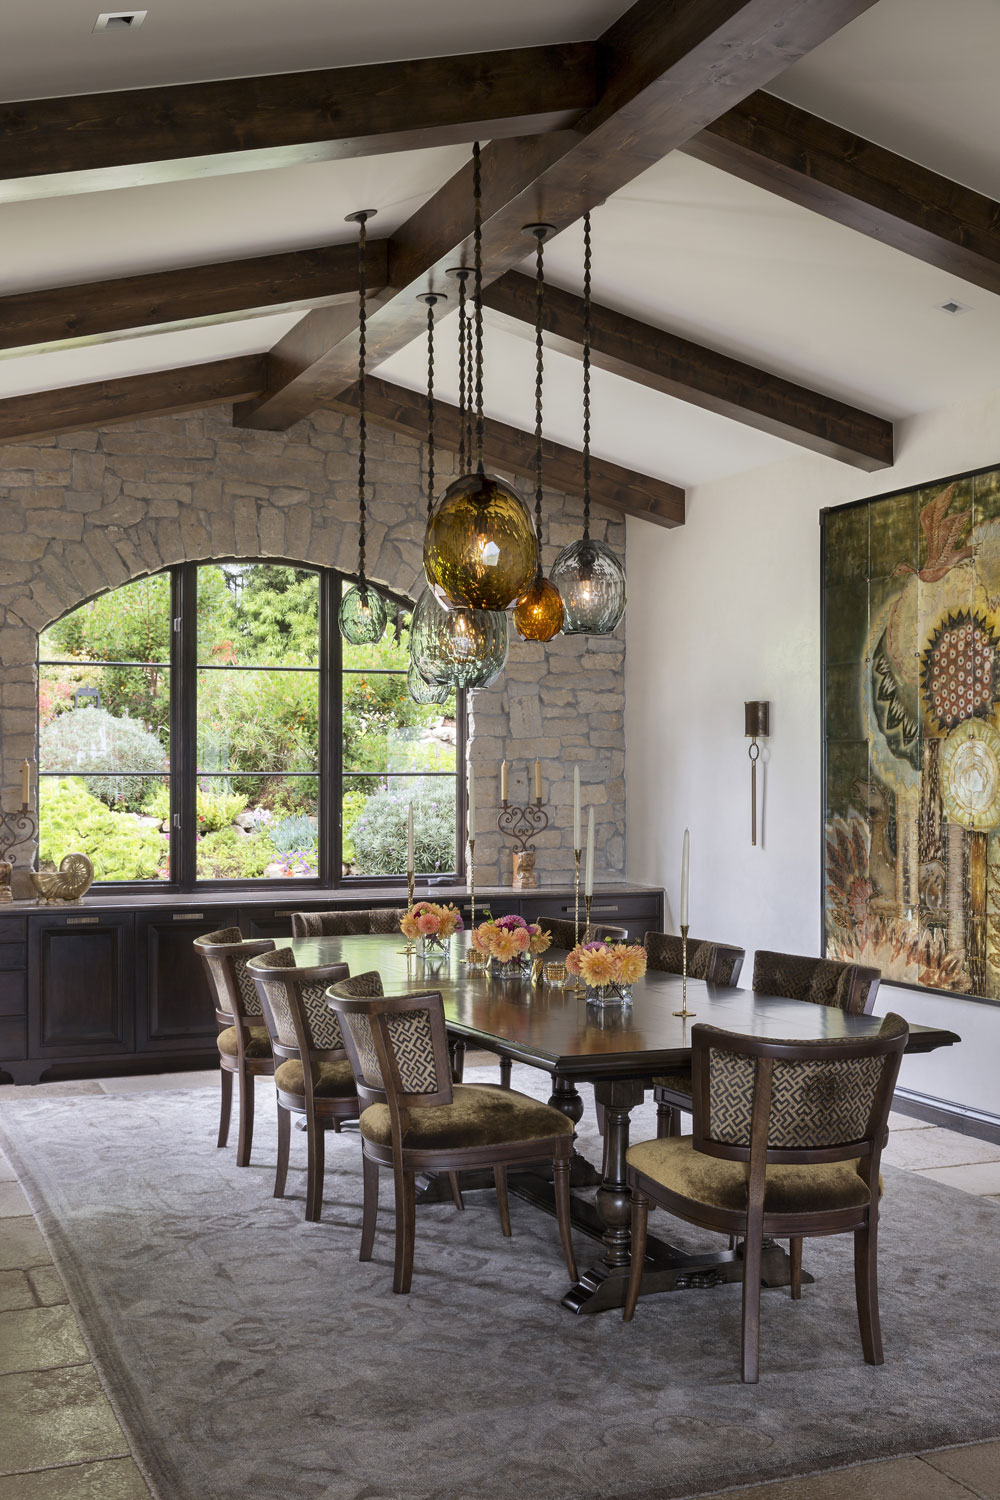 contemporary-mediterranean-dining-room-beamed-ceiling-stone-wall-premier.jpg